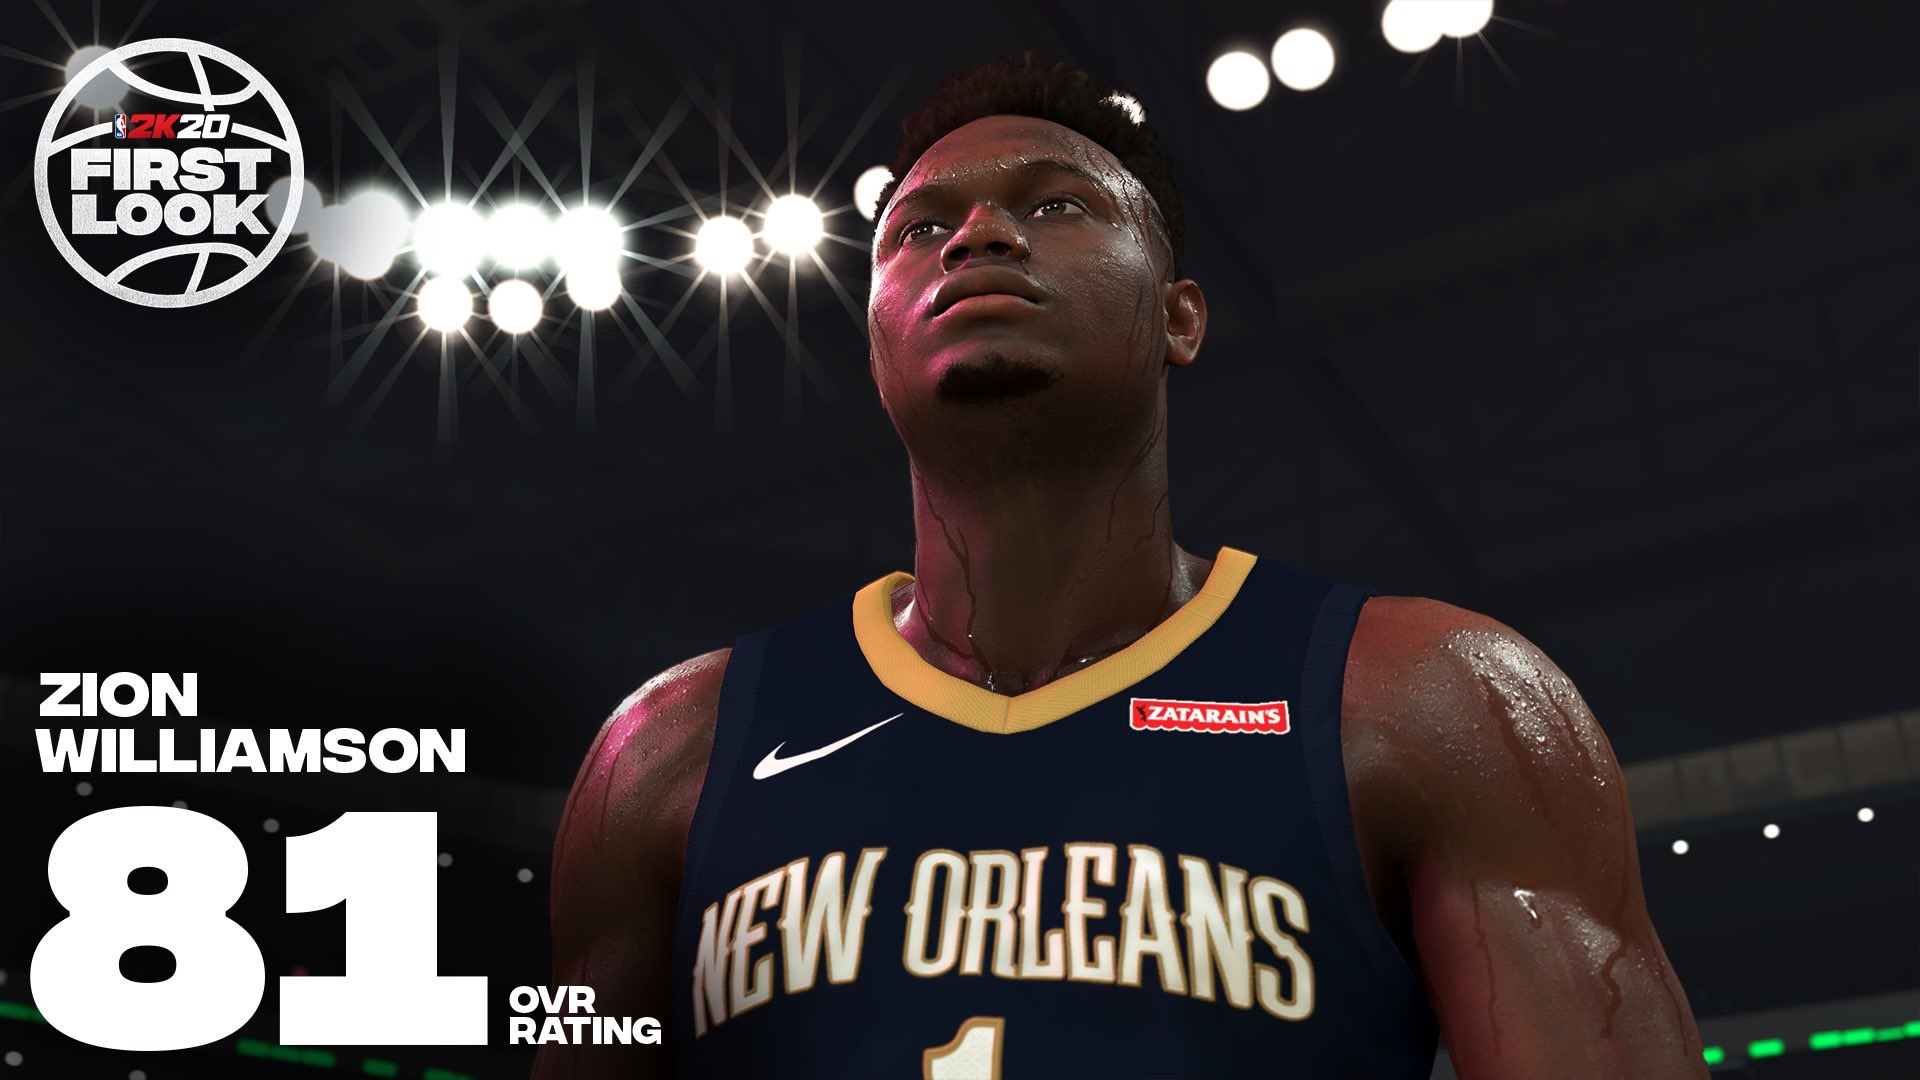 NBA 2K20 Badges Brandon Ingram and Zion Williamson